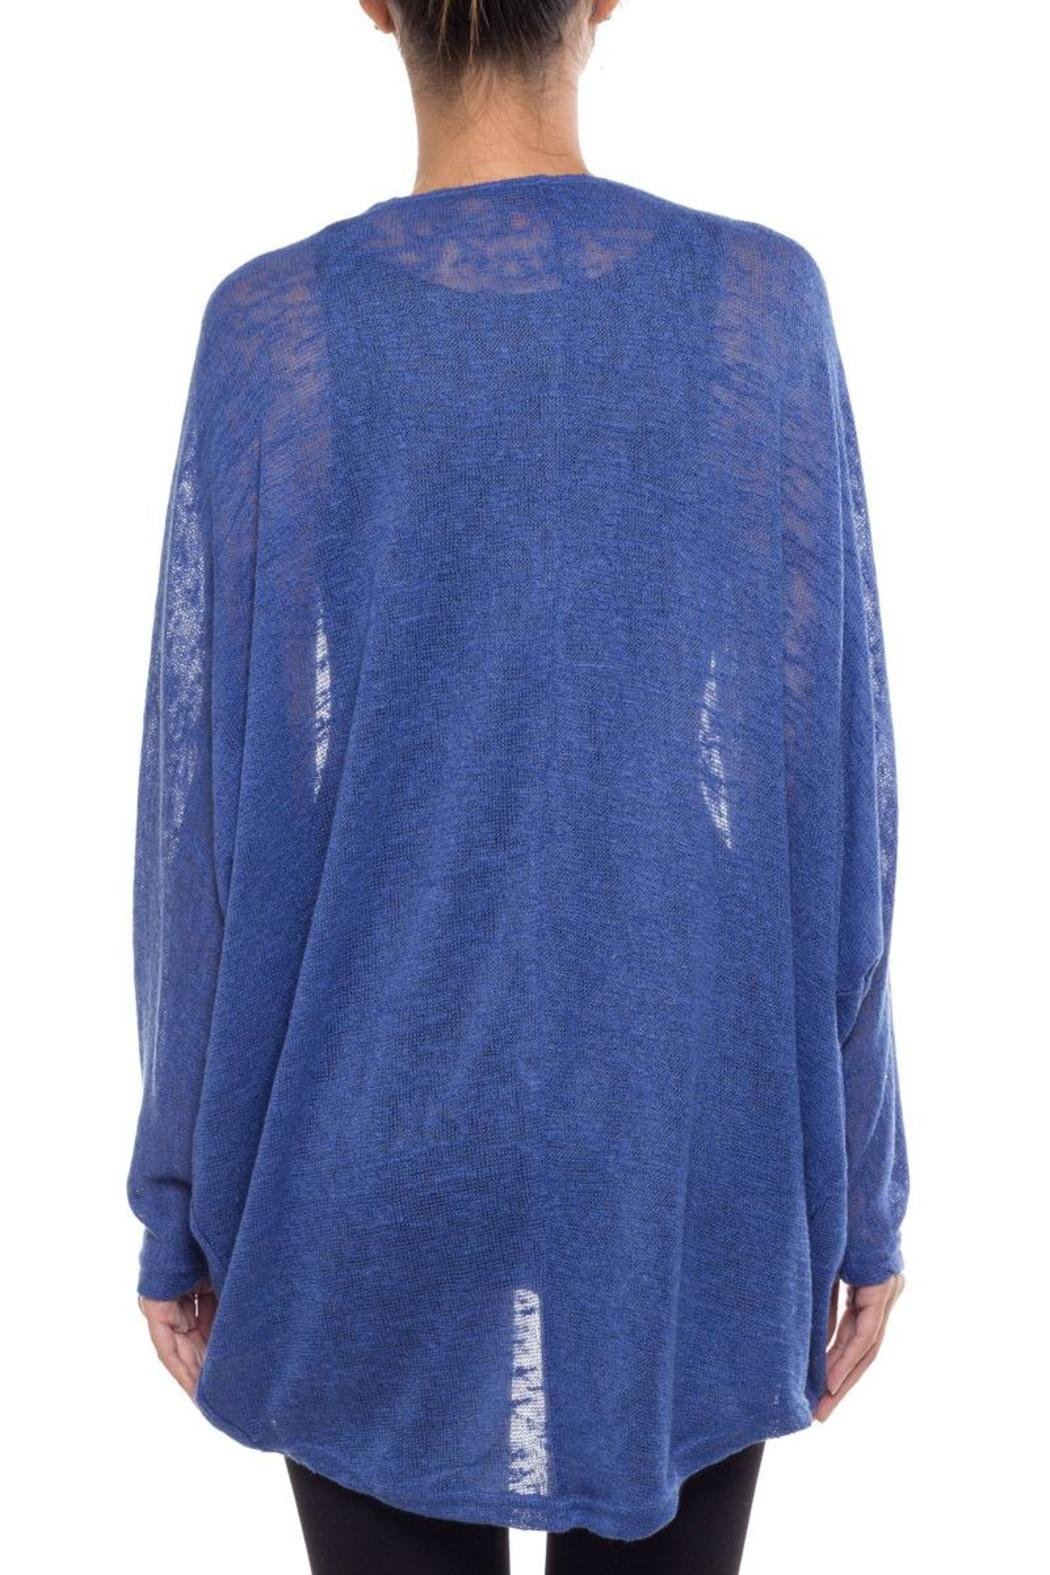 Coveted Clothing Oversize Dolman Cardigan - Side Cropped Image